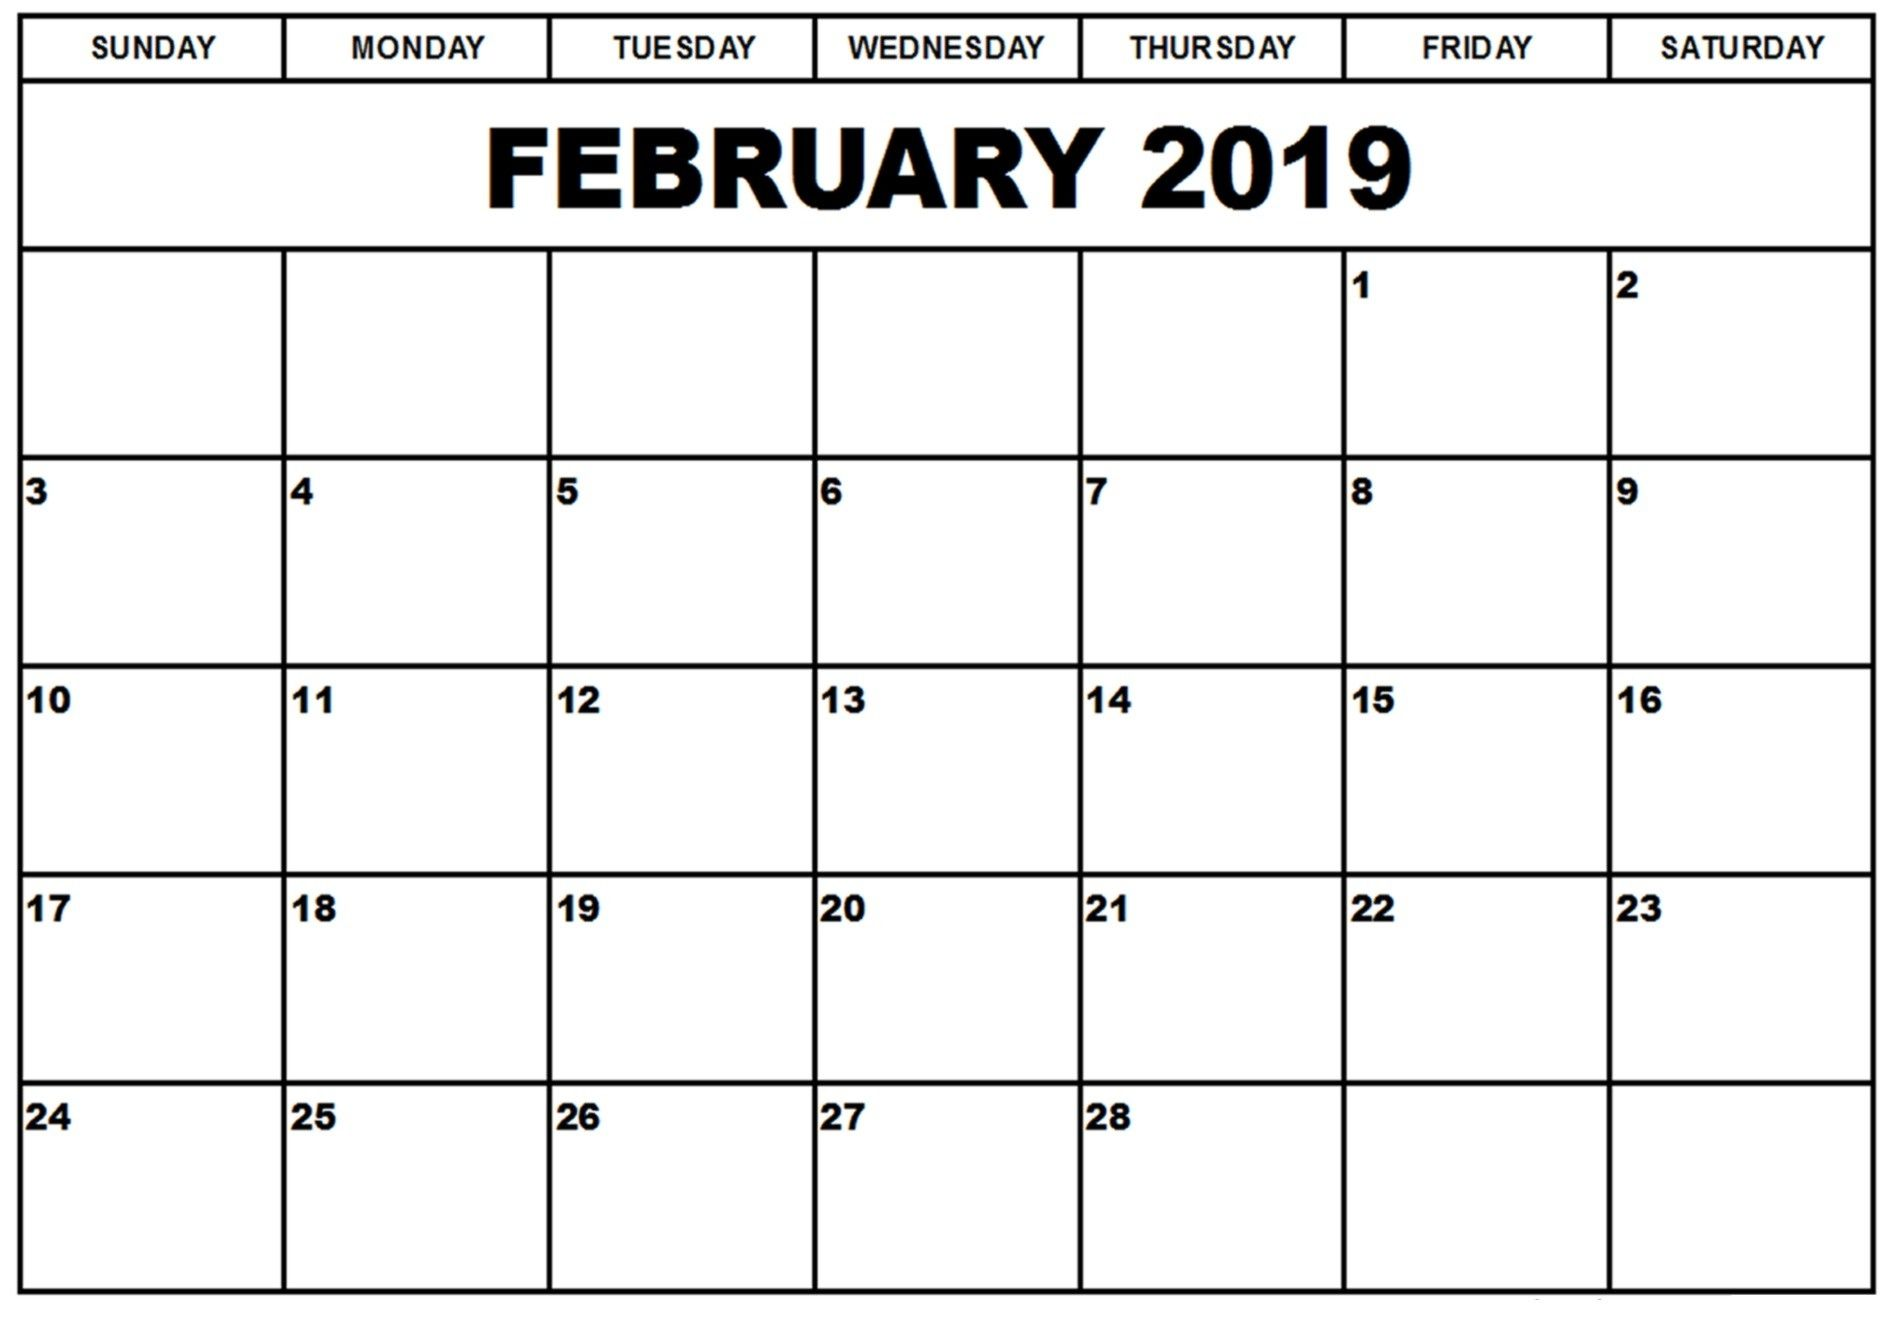 February 2019 Calendar Download February Calendar February 2019